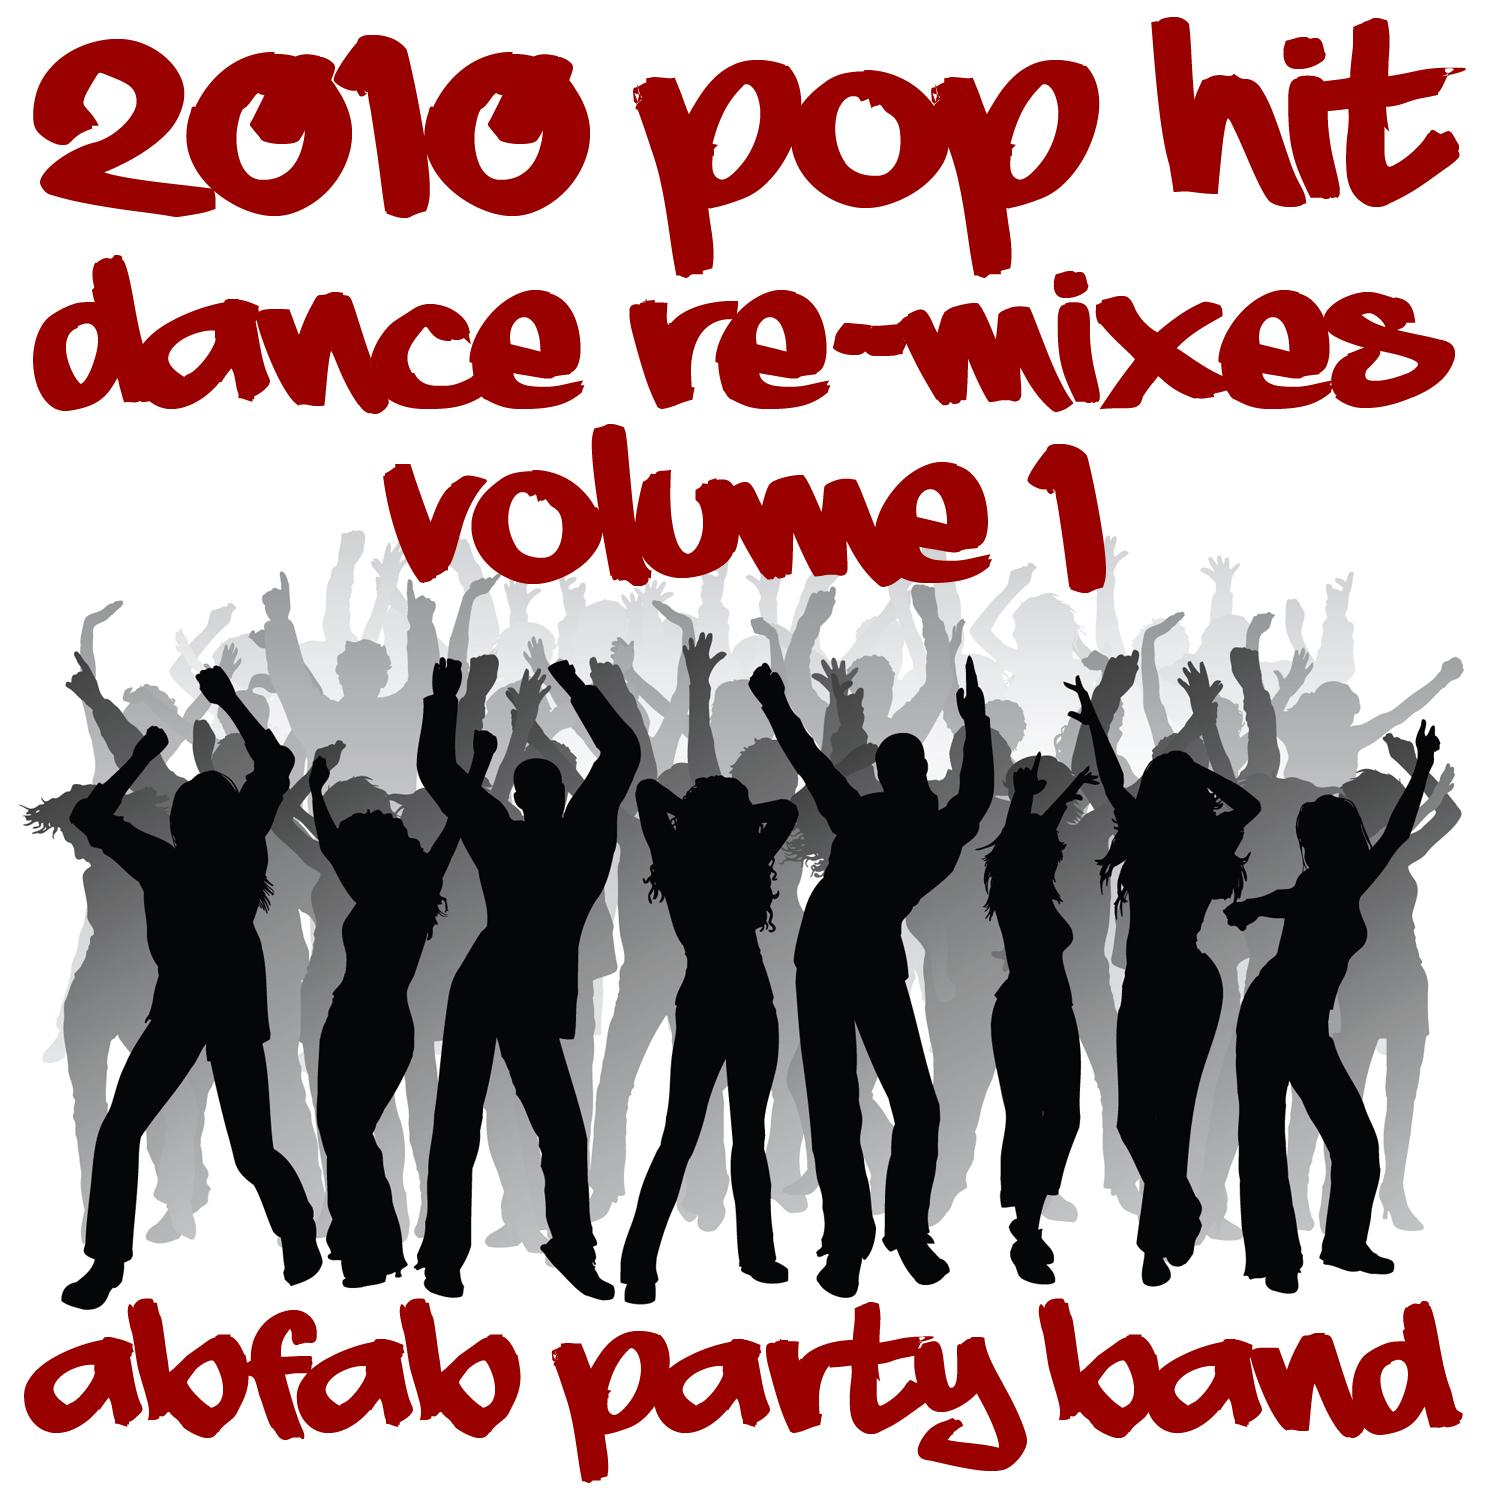 2010 Pop Hit Dance Re-Mixes Vol. 1